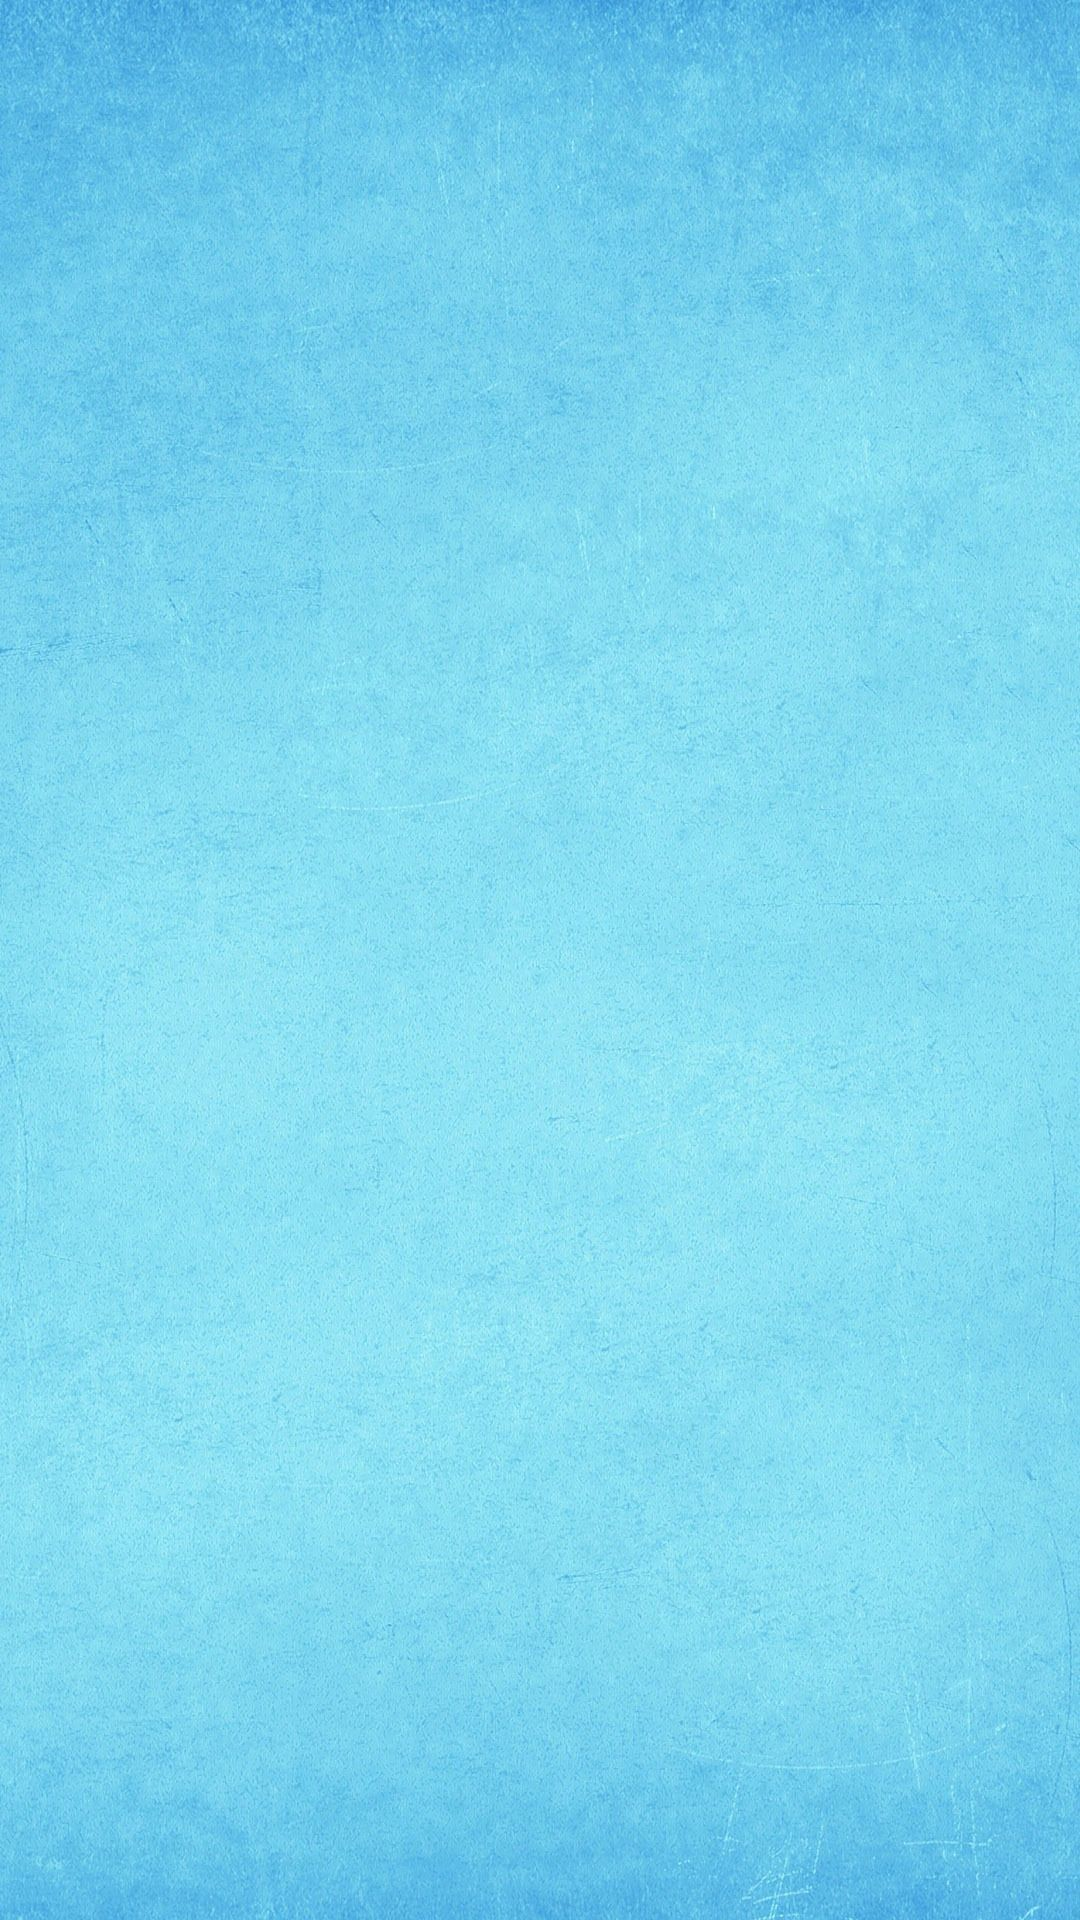 Light blue texture Mobile Wallpaper 6482